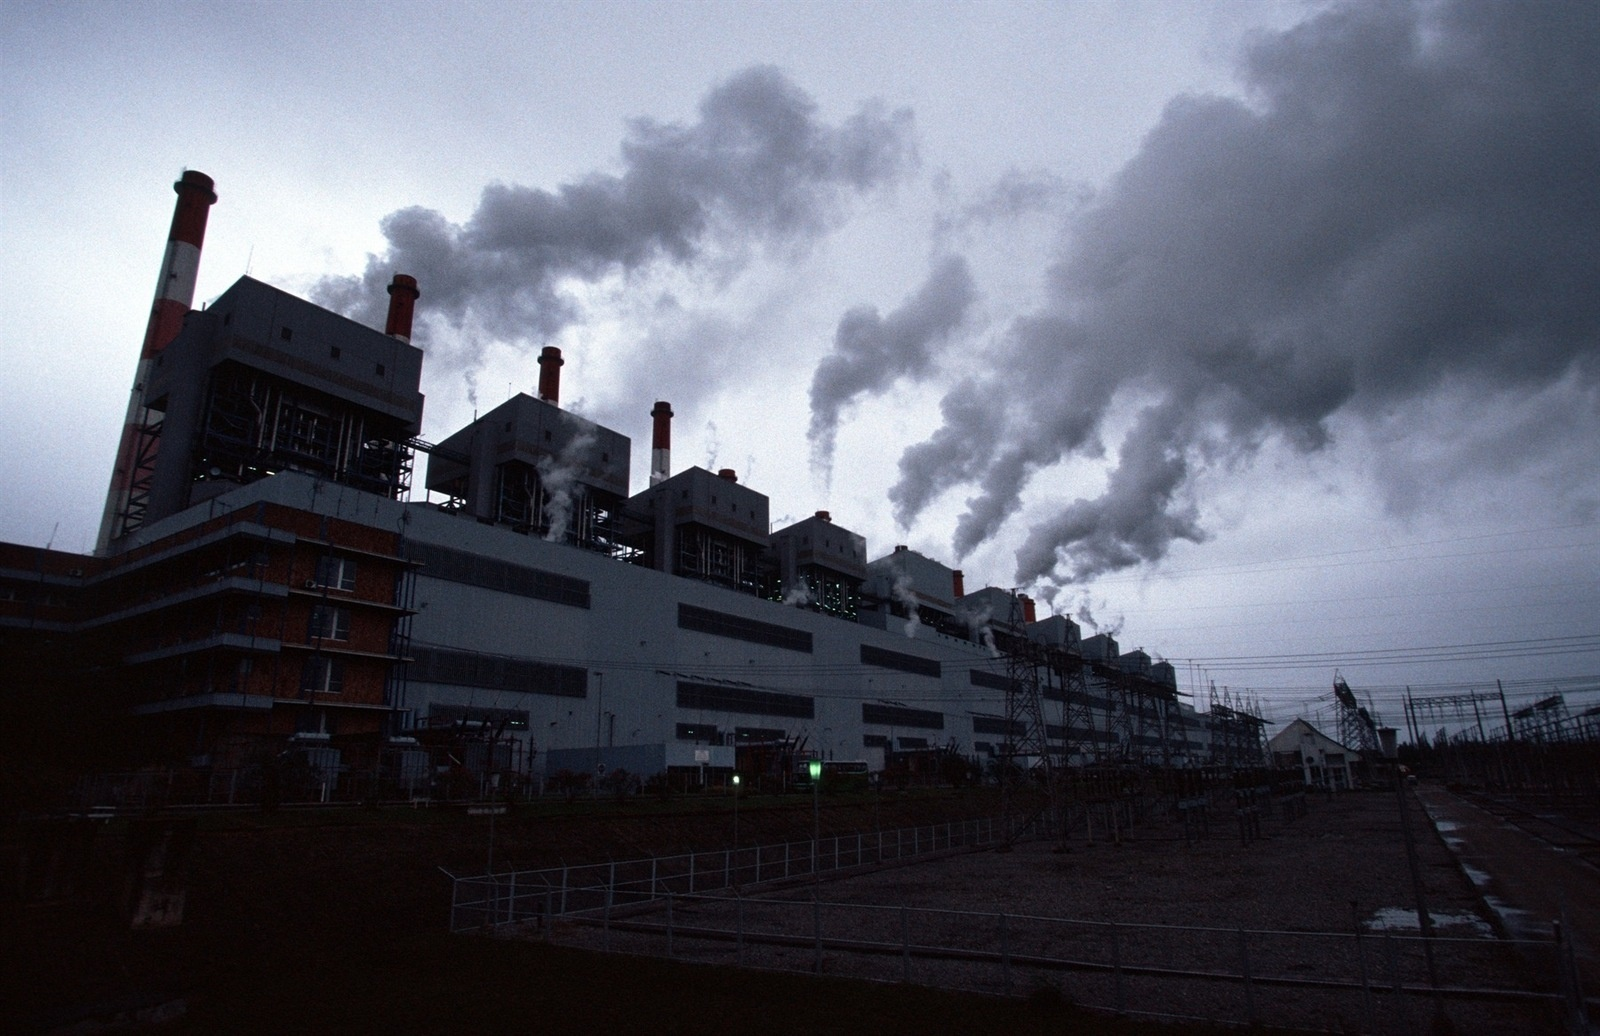 Toxic pollution pours from the huge chimney stacks of the Mae Moh power plant, Southeast Asia's largest lignite fired power generating facility.  Villagers in the area have long complained that the plant, which supplies north and northeast Thailand with power, is contaminating the surrounding area and poses a hazard to their health as well as damaging agricultural land.   The Mae Moh Power Plant, as it is known, began operations about 30 years ago and, despite being dogged by accusations of excessive pollution and evidence that locals are suffering respiratory problems as a result of burn-off from the plant, has continued to expand production.   Environmental activists in Thailand and elsewhere see the plant as an example of unclean power technology that should not be repeated in other countries. Proponents of coal and lignite plants say it offers cost effective energy with relatively little impact on the environment.